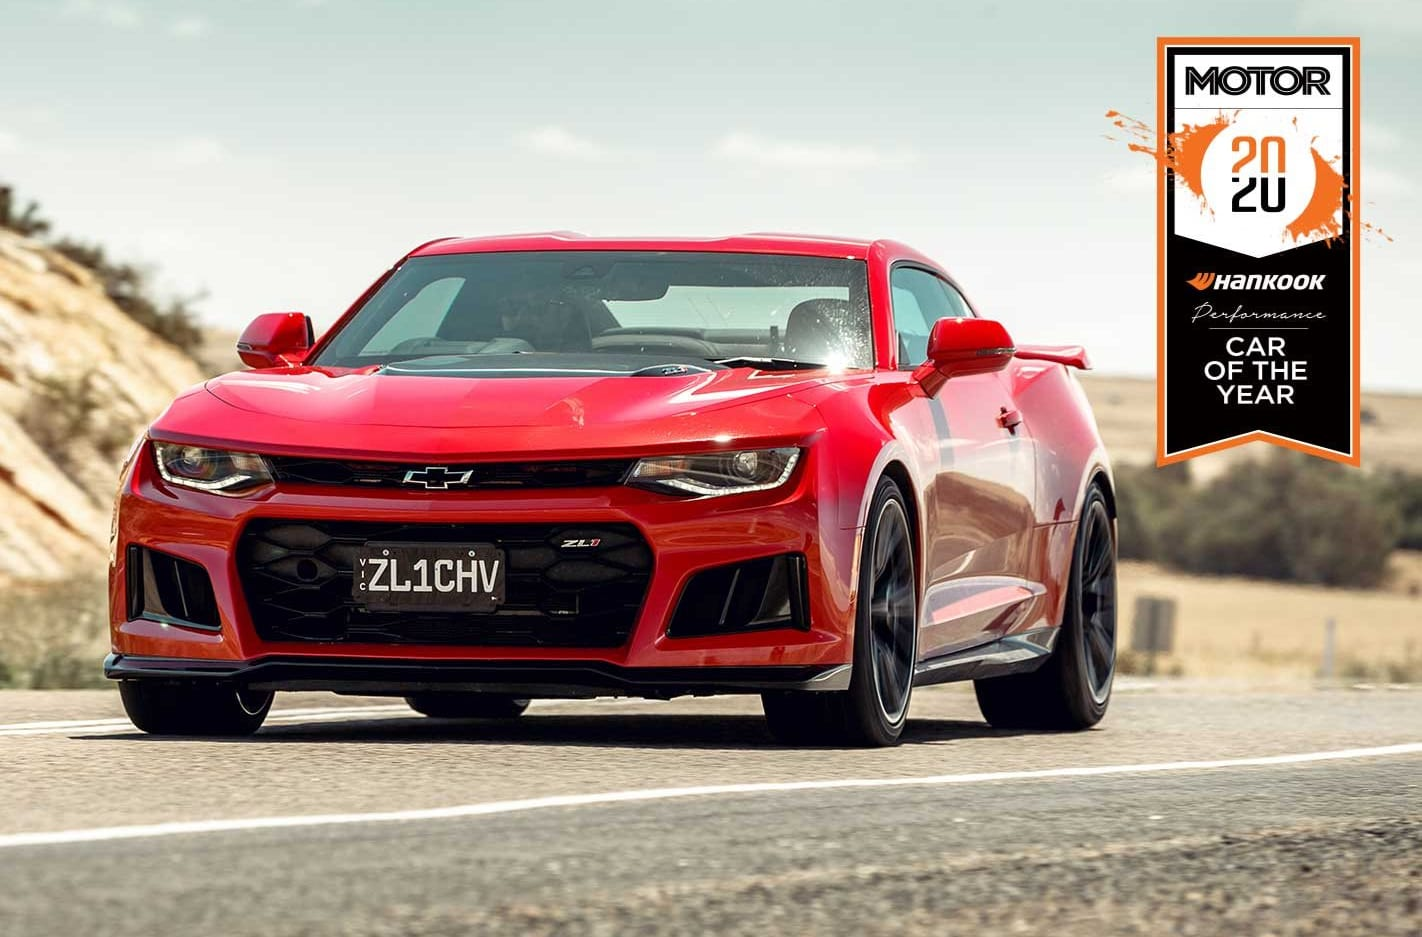 Chevrolet Camaro ZL1 Performance Car of the Year 2020 results